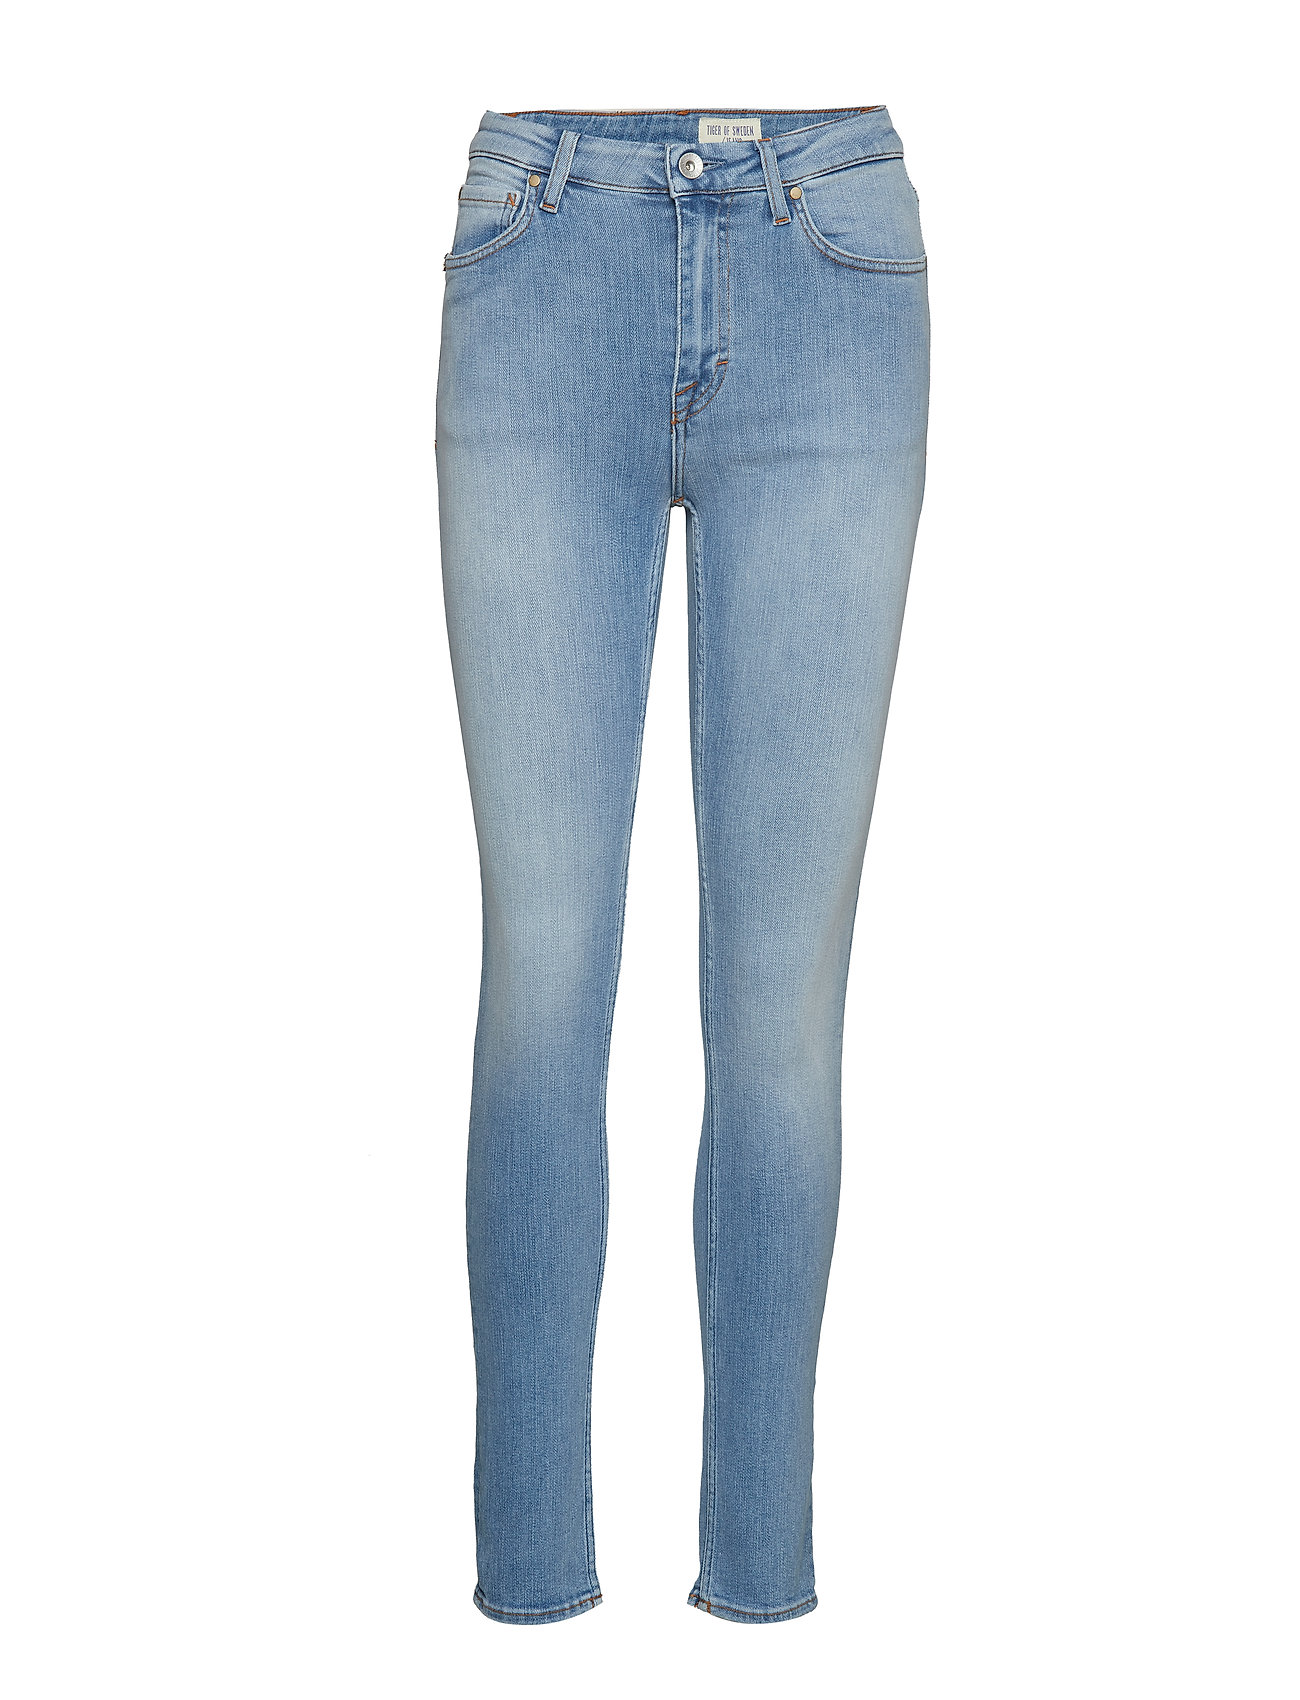 Tiger of Sweden Jeans SHELLY - LIGHT BLUE